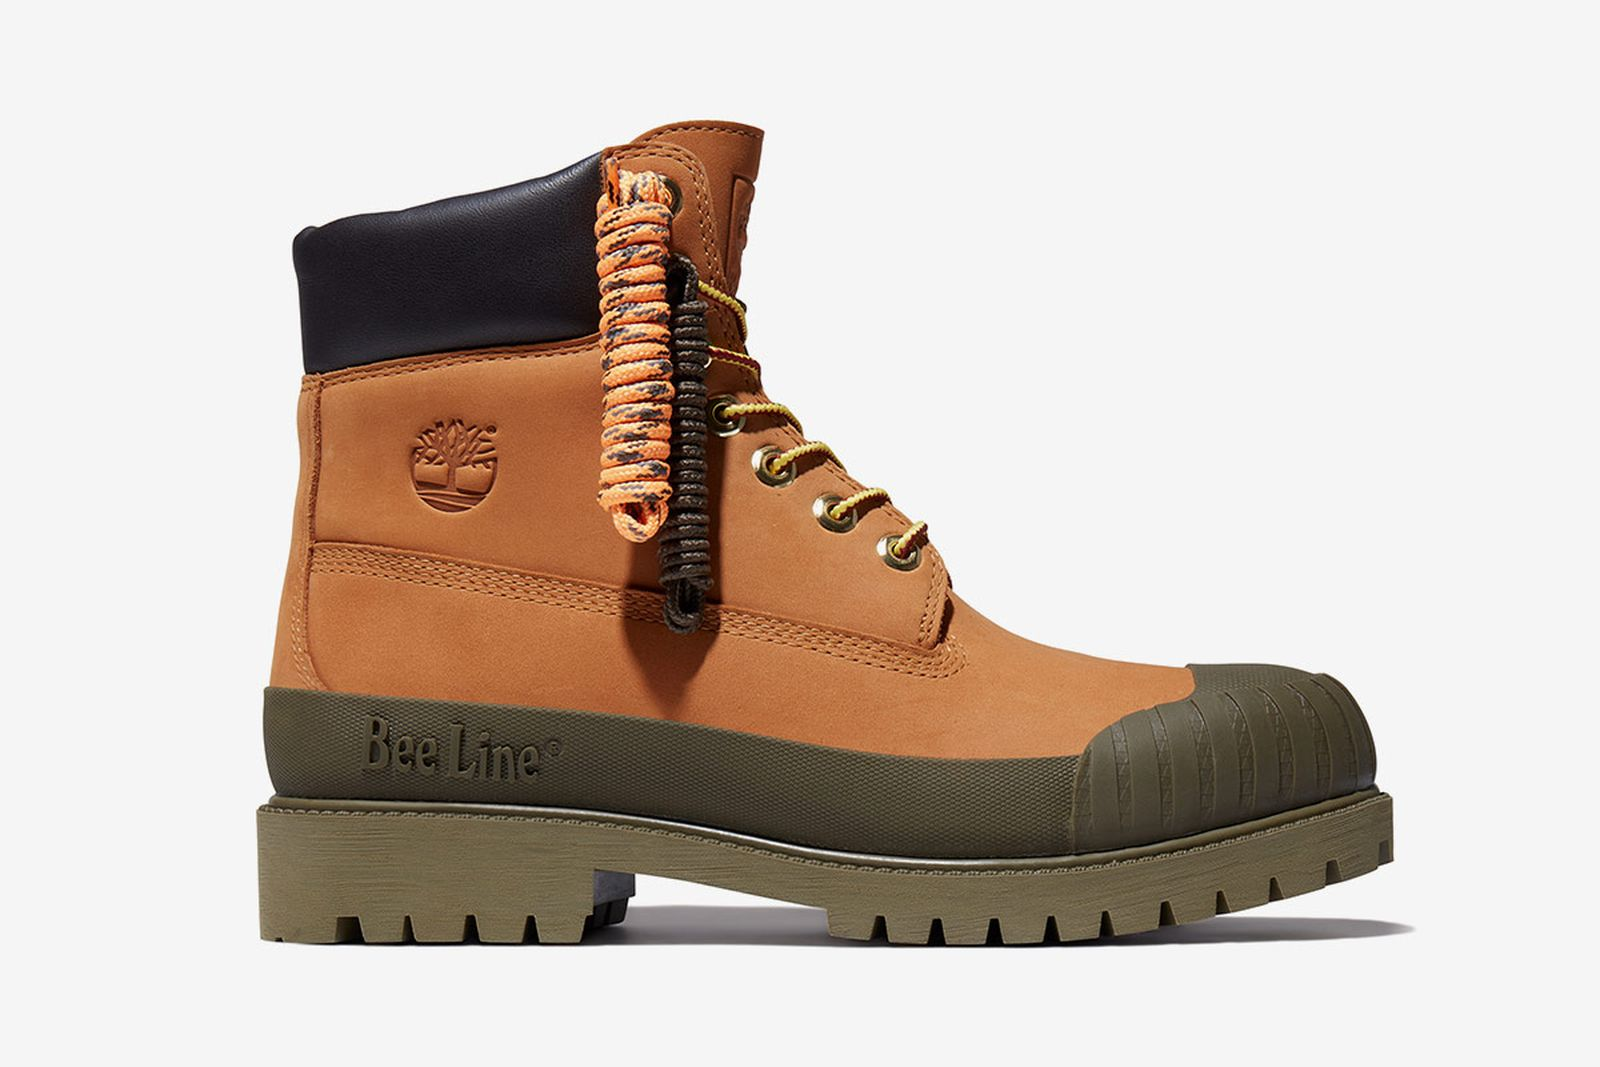 bee-line-billionaire-boys-club-timberland-boot-release-date-price-003